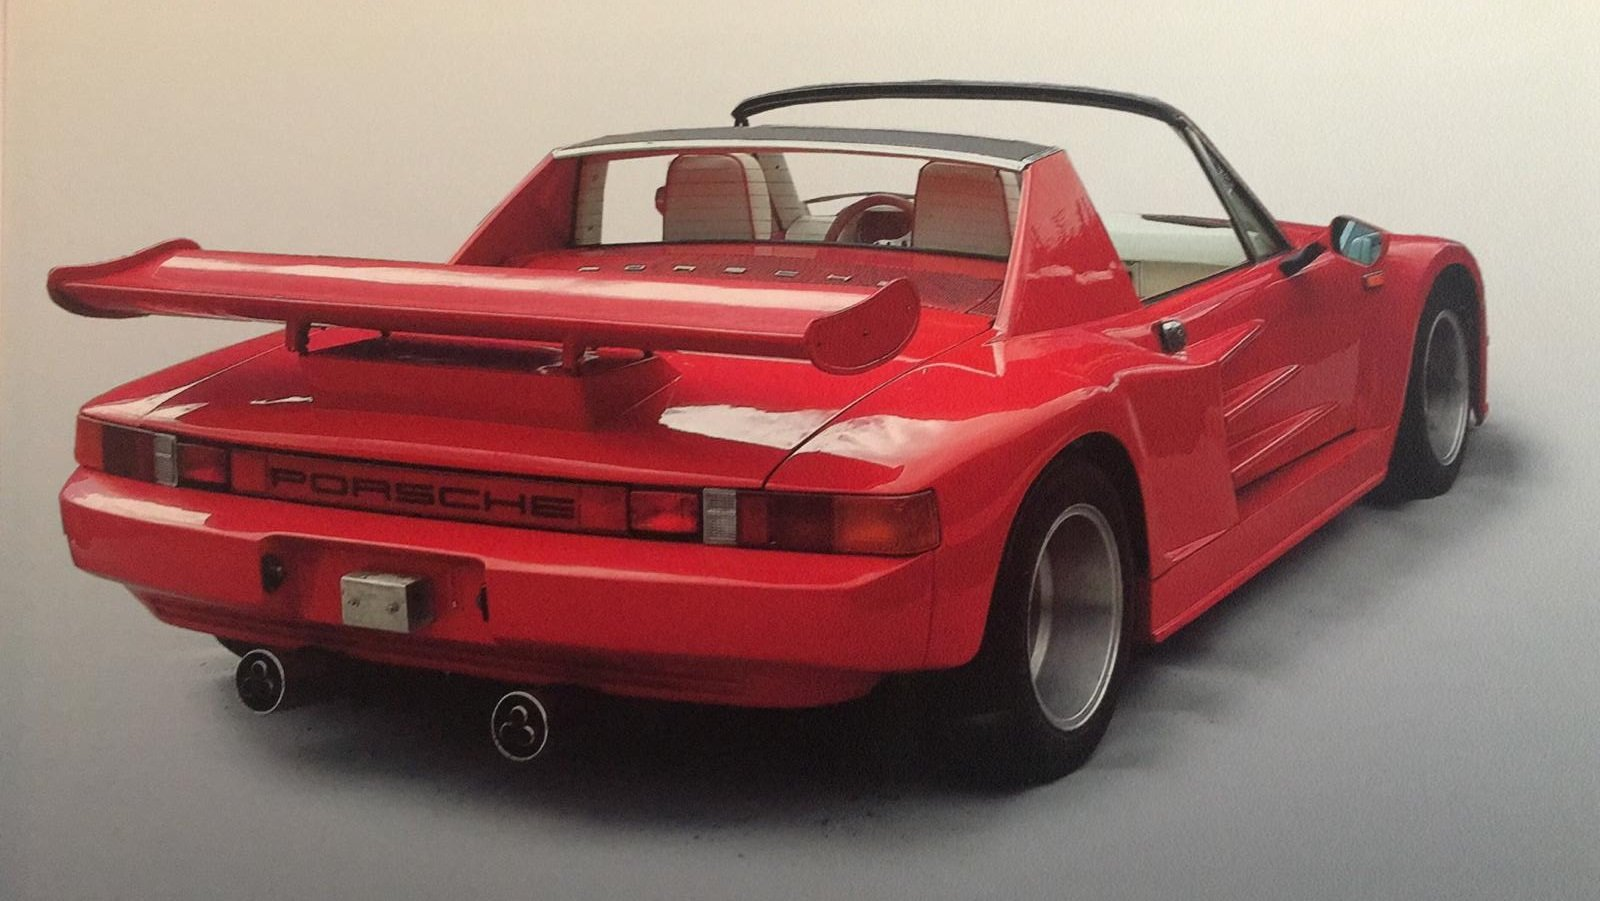 1975 1 OF 3 TUNED PORSCHE 914/6 2.0L - INSPIRED BY PIECH For Sale (picture 3 of 6)